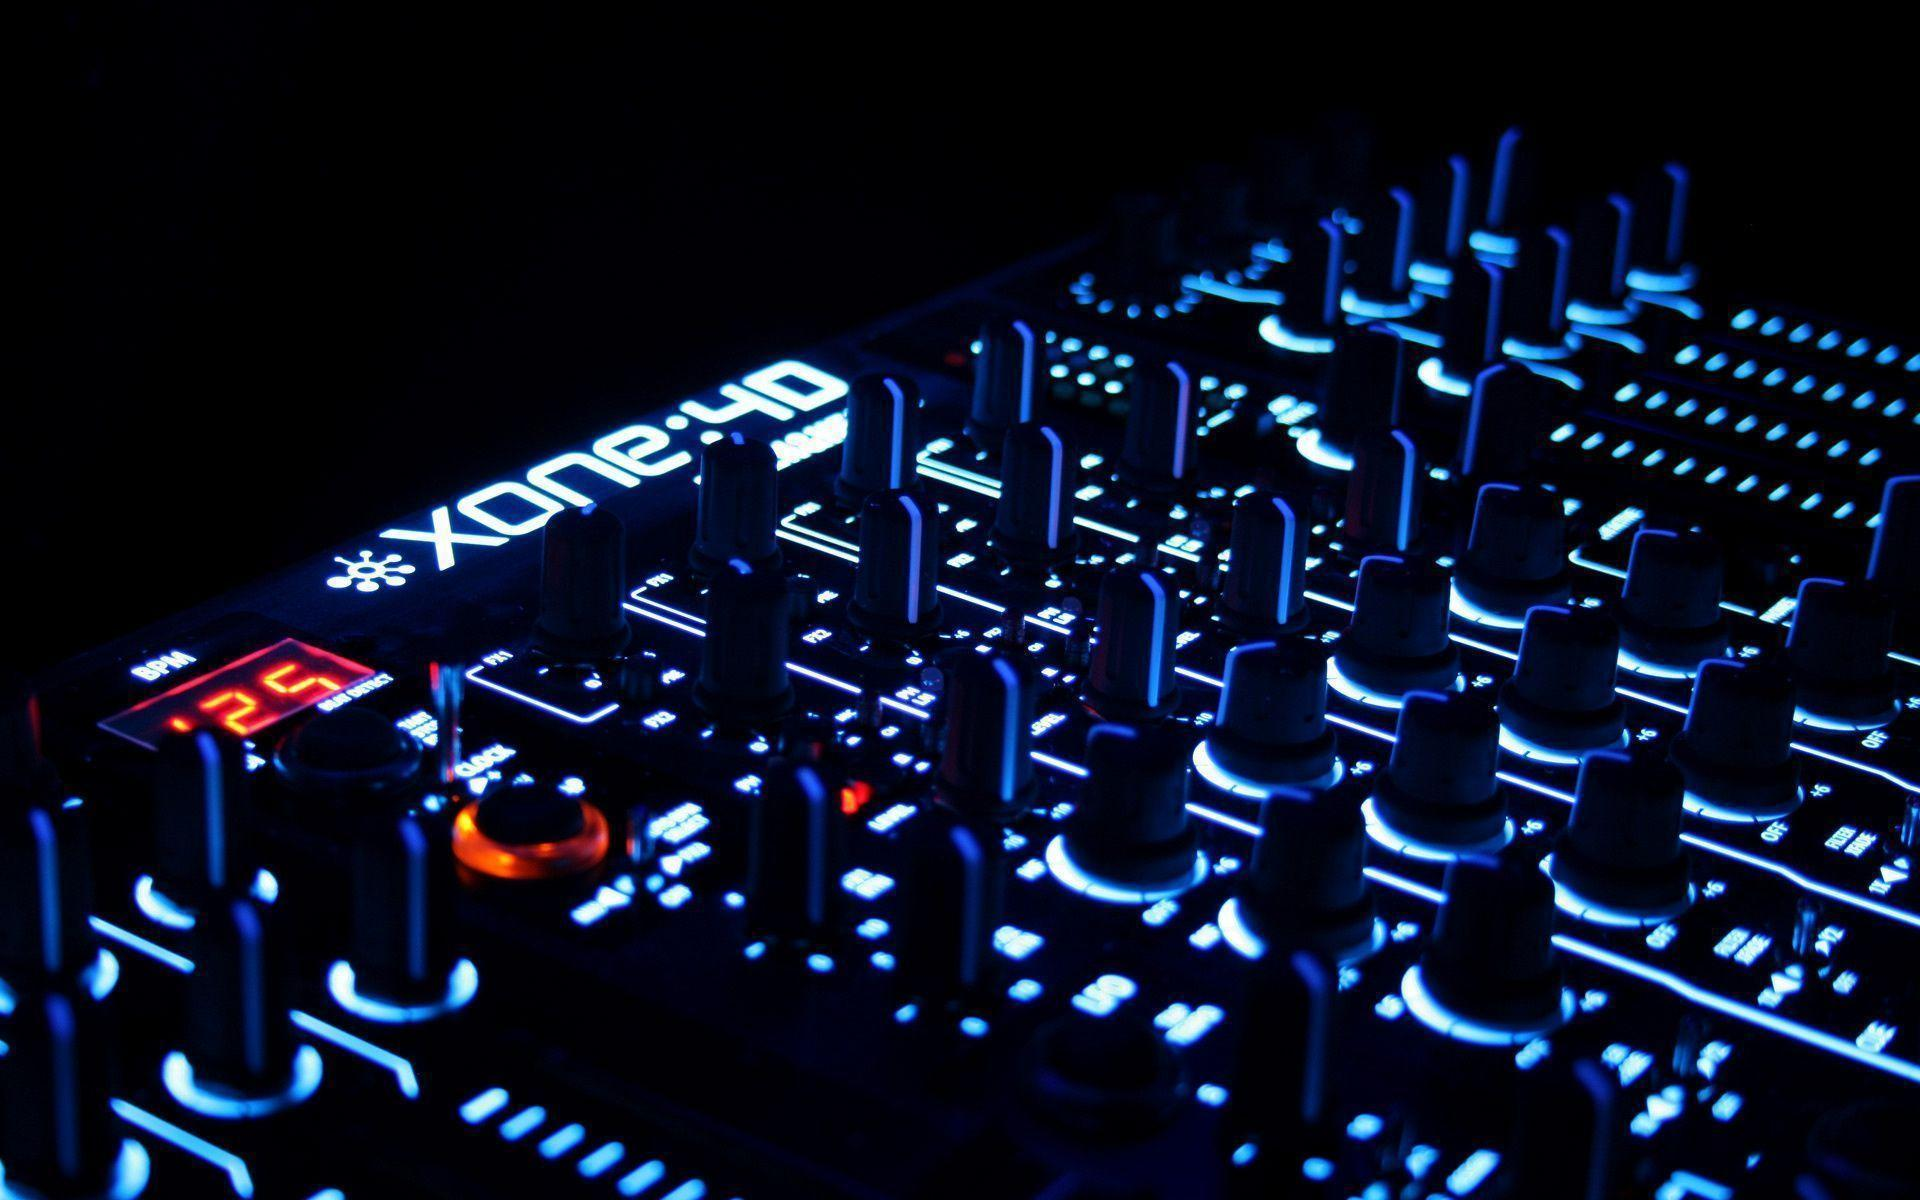 Electro house music wallpaper wallpapersafari for House music images